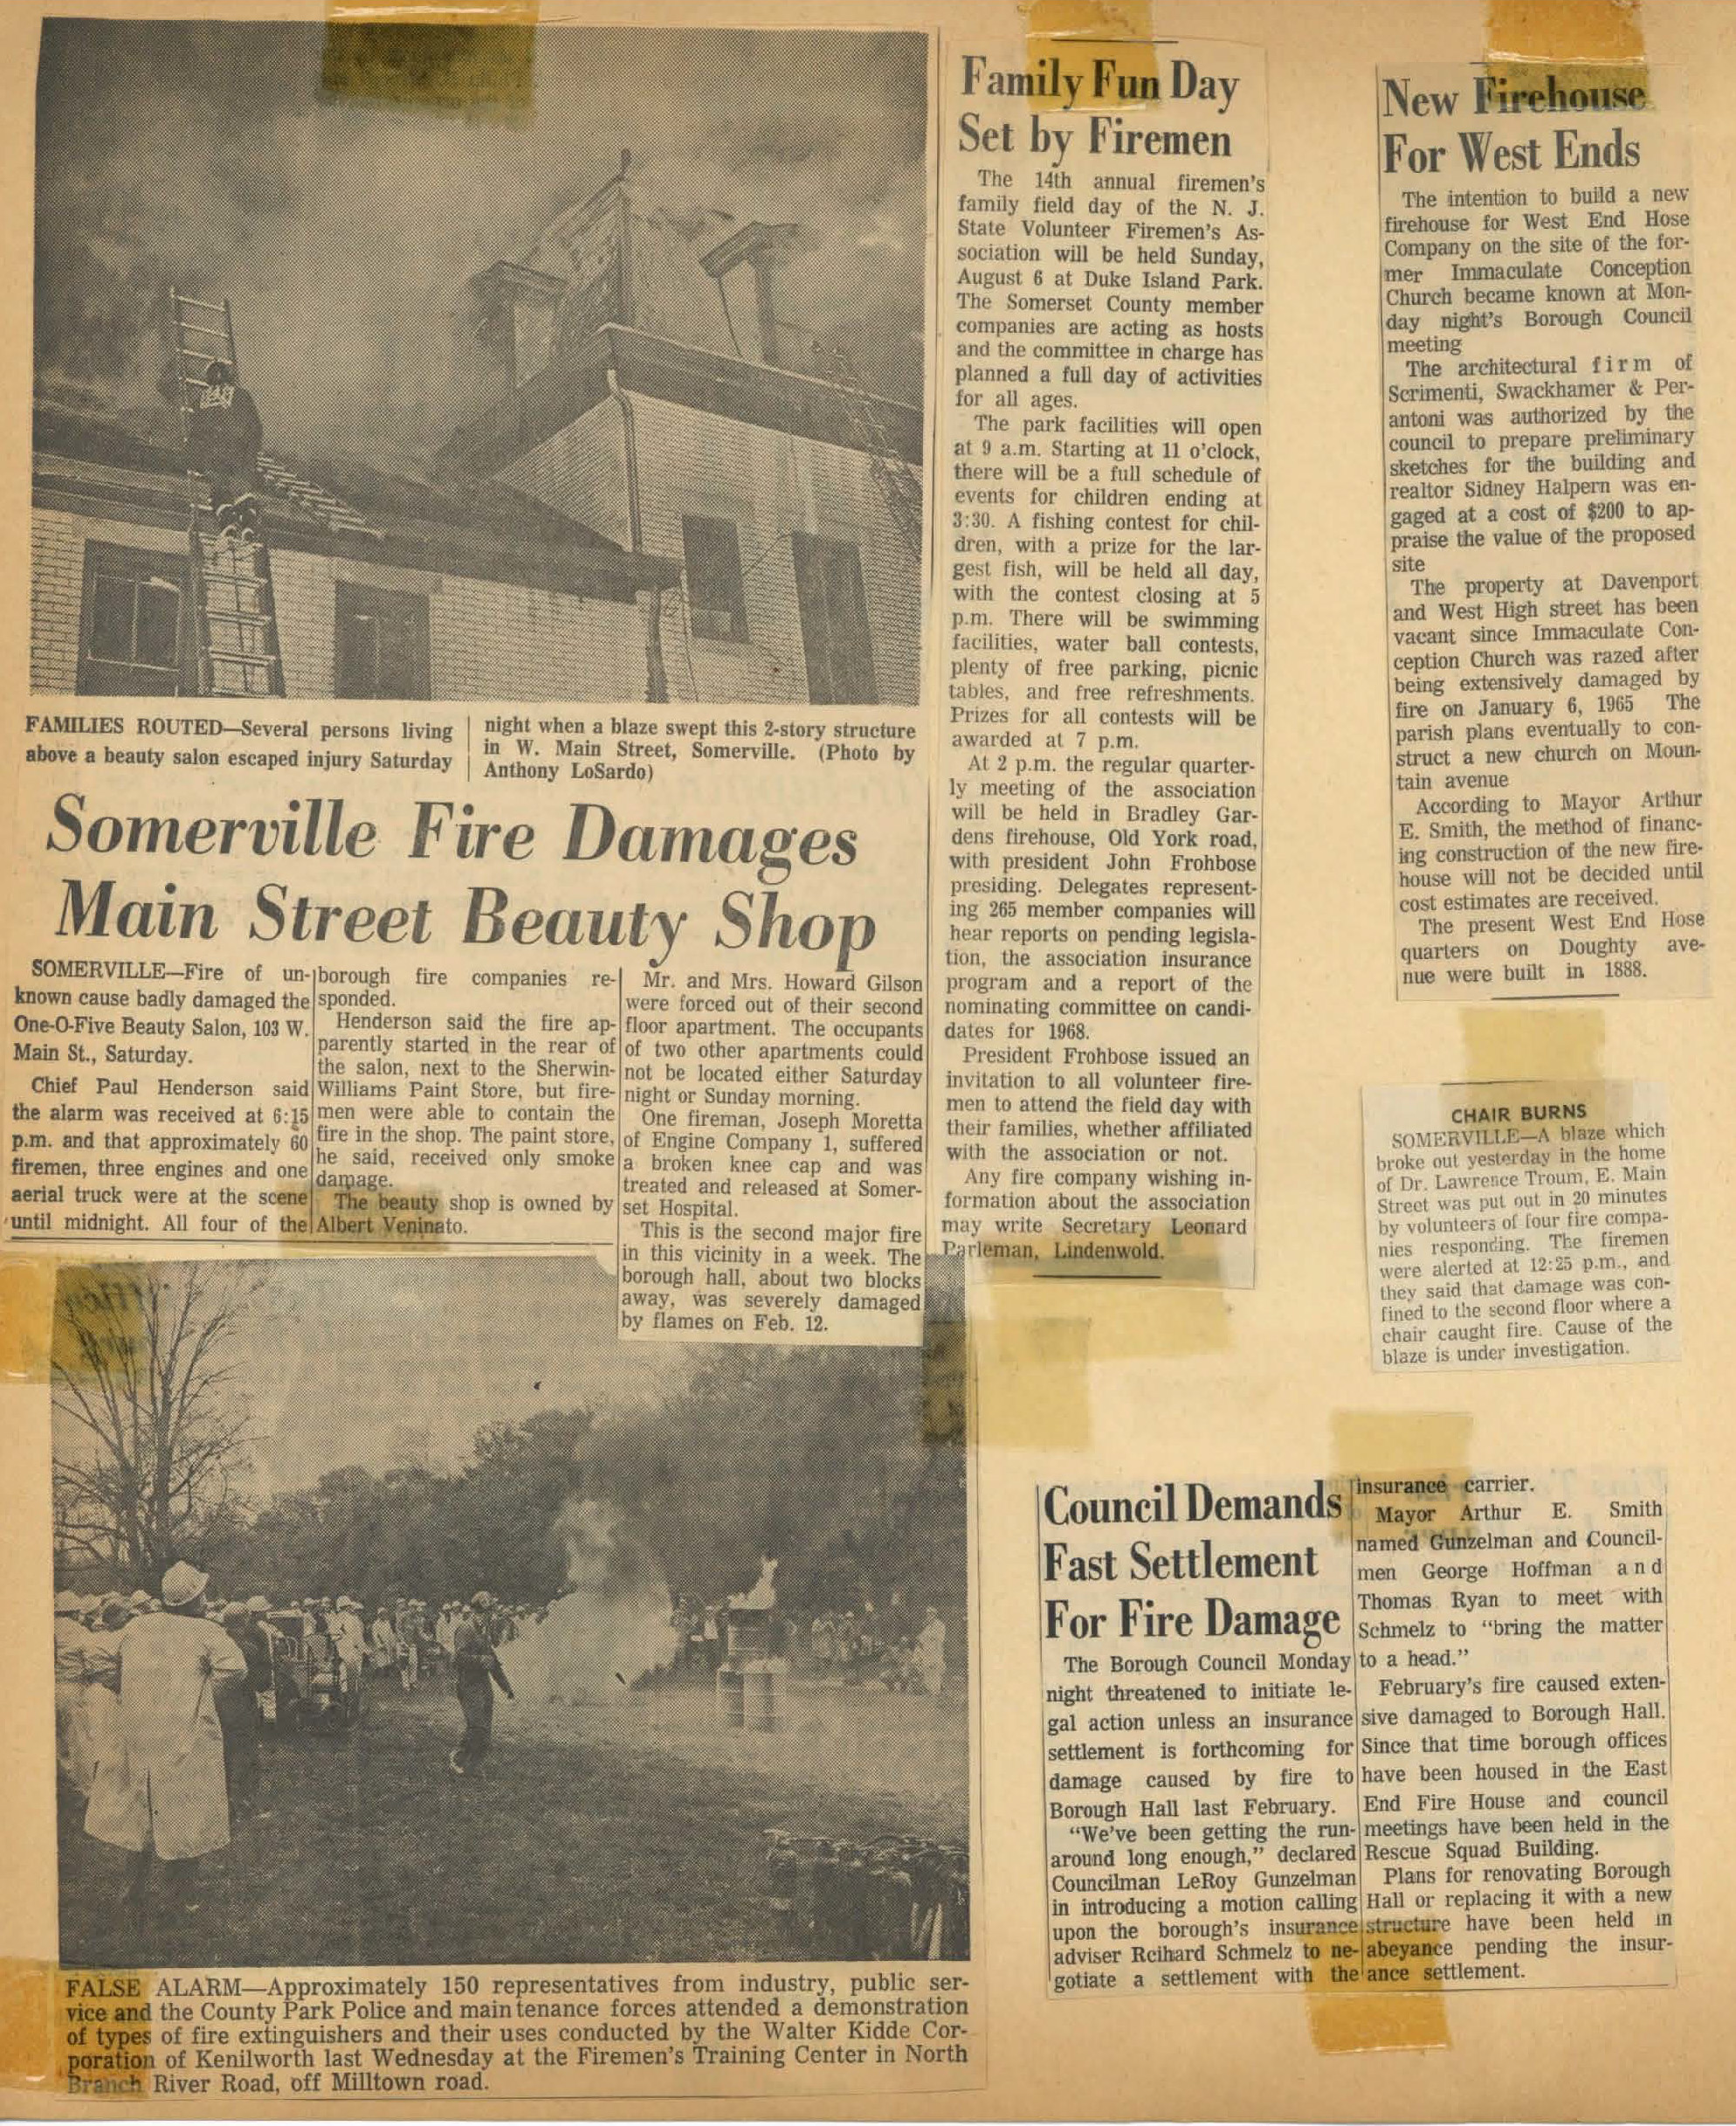 1968 Beauty shop fire.article_Page_1_Image_0001.jpg